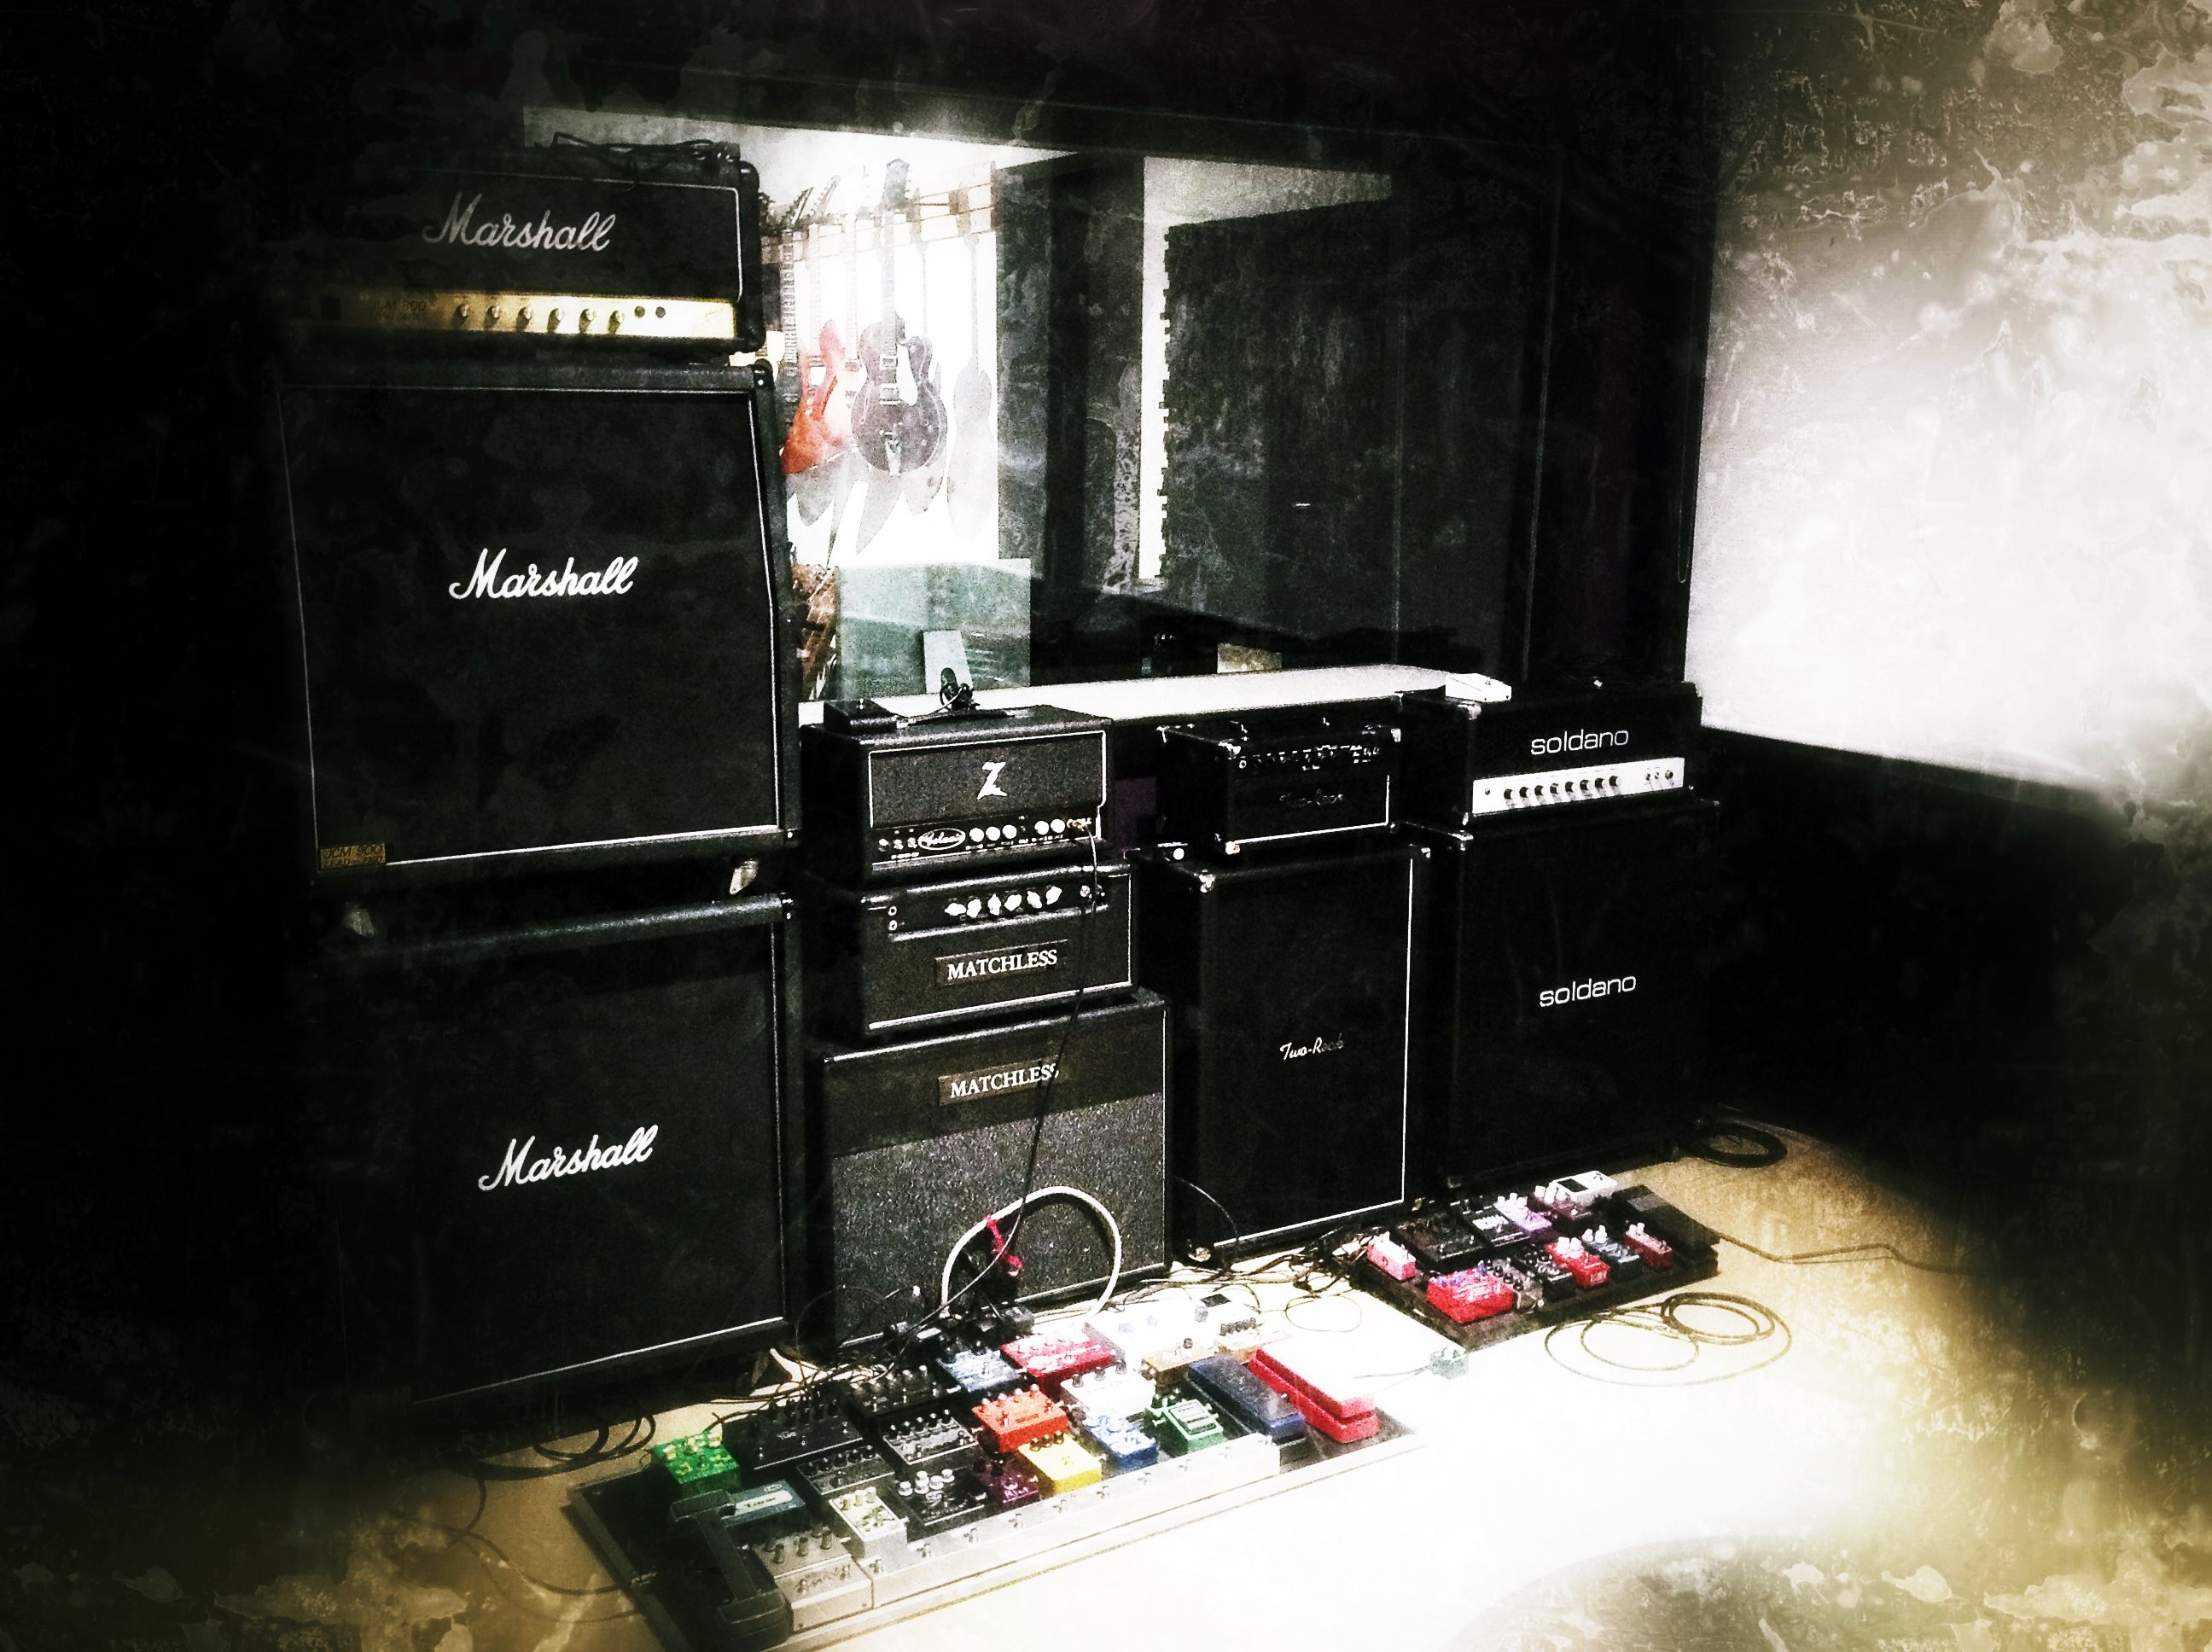 wall of sound jcm800 dr z galaxie matchless clubman two rock studio pro 22 soldano hot rod. Black Bedroom Furniture Sets. Home Design Ideas